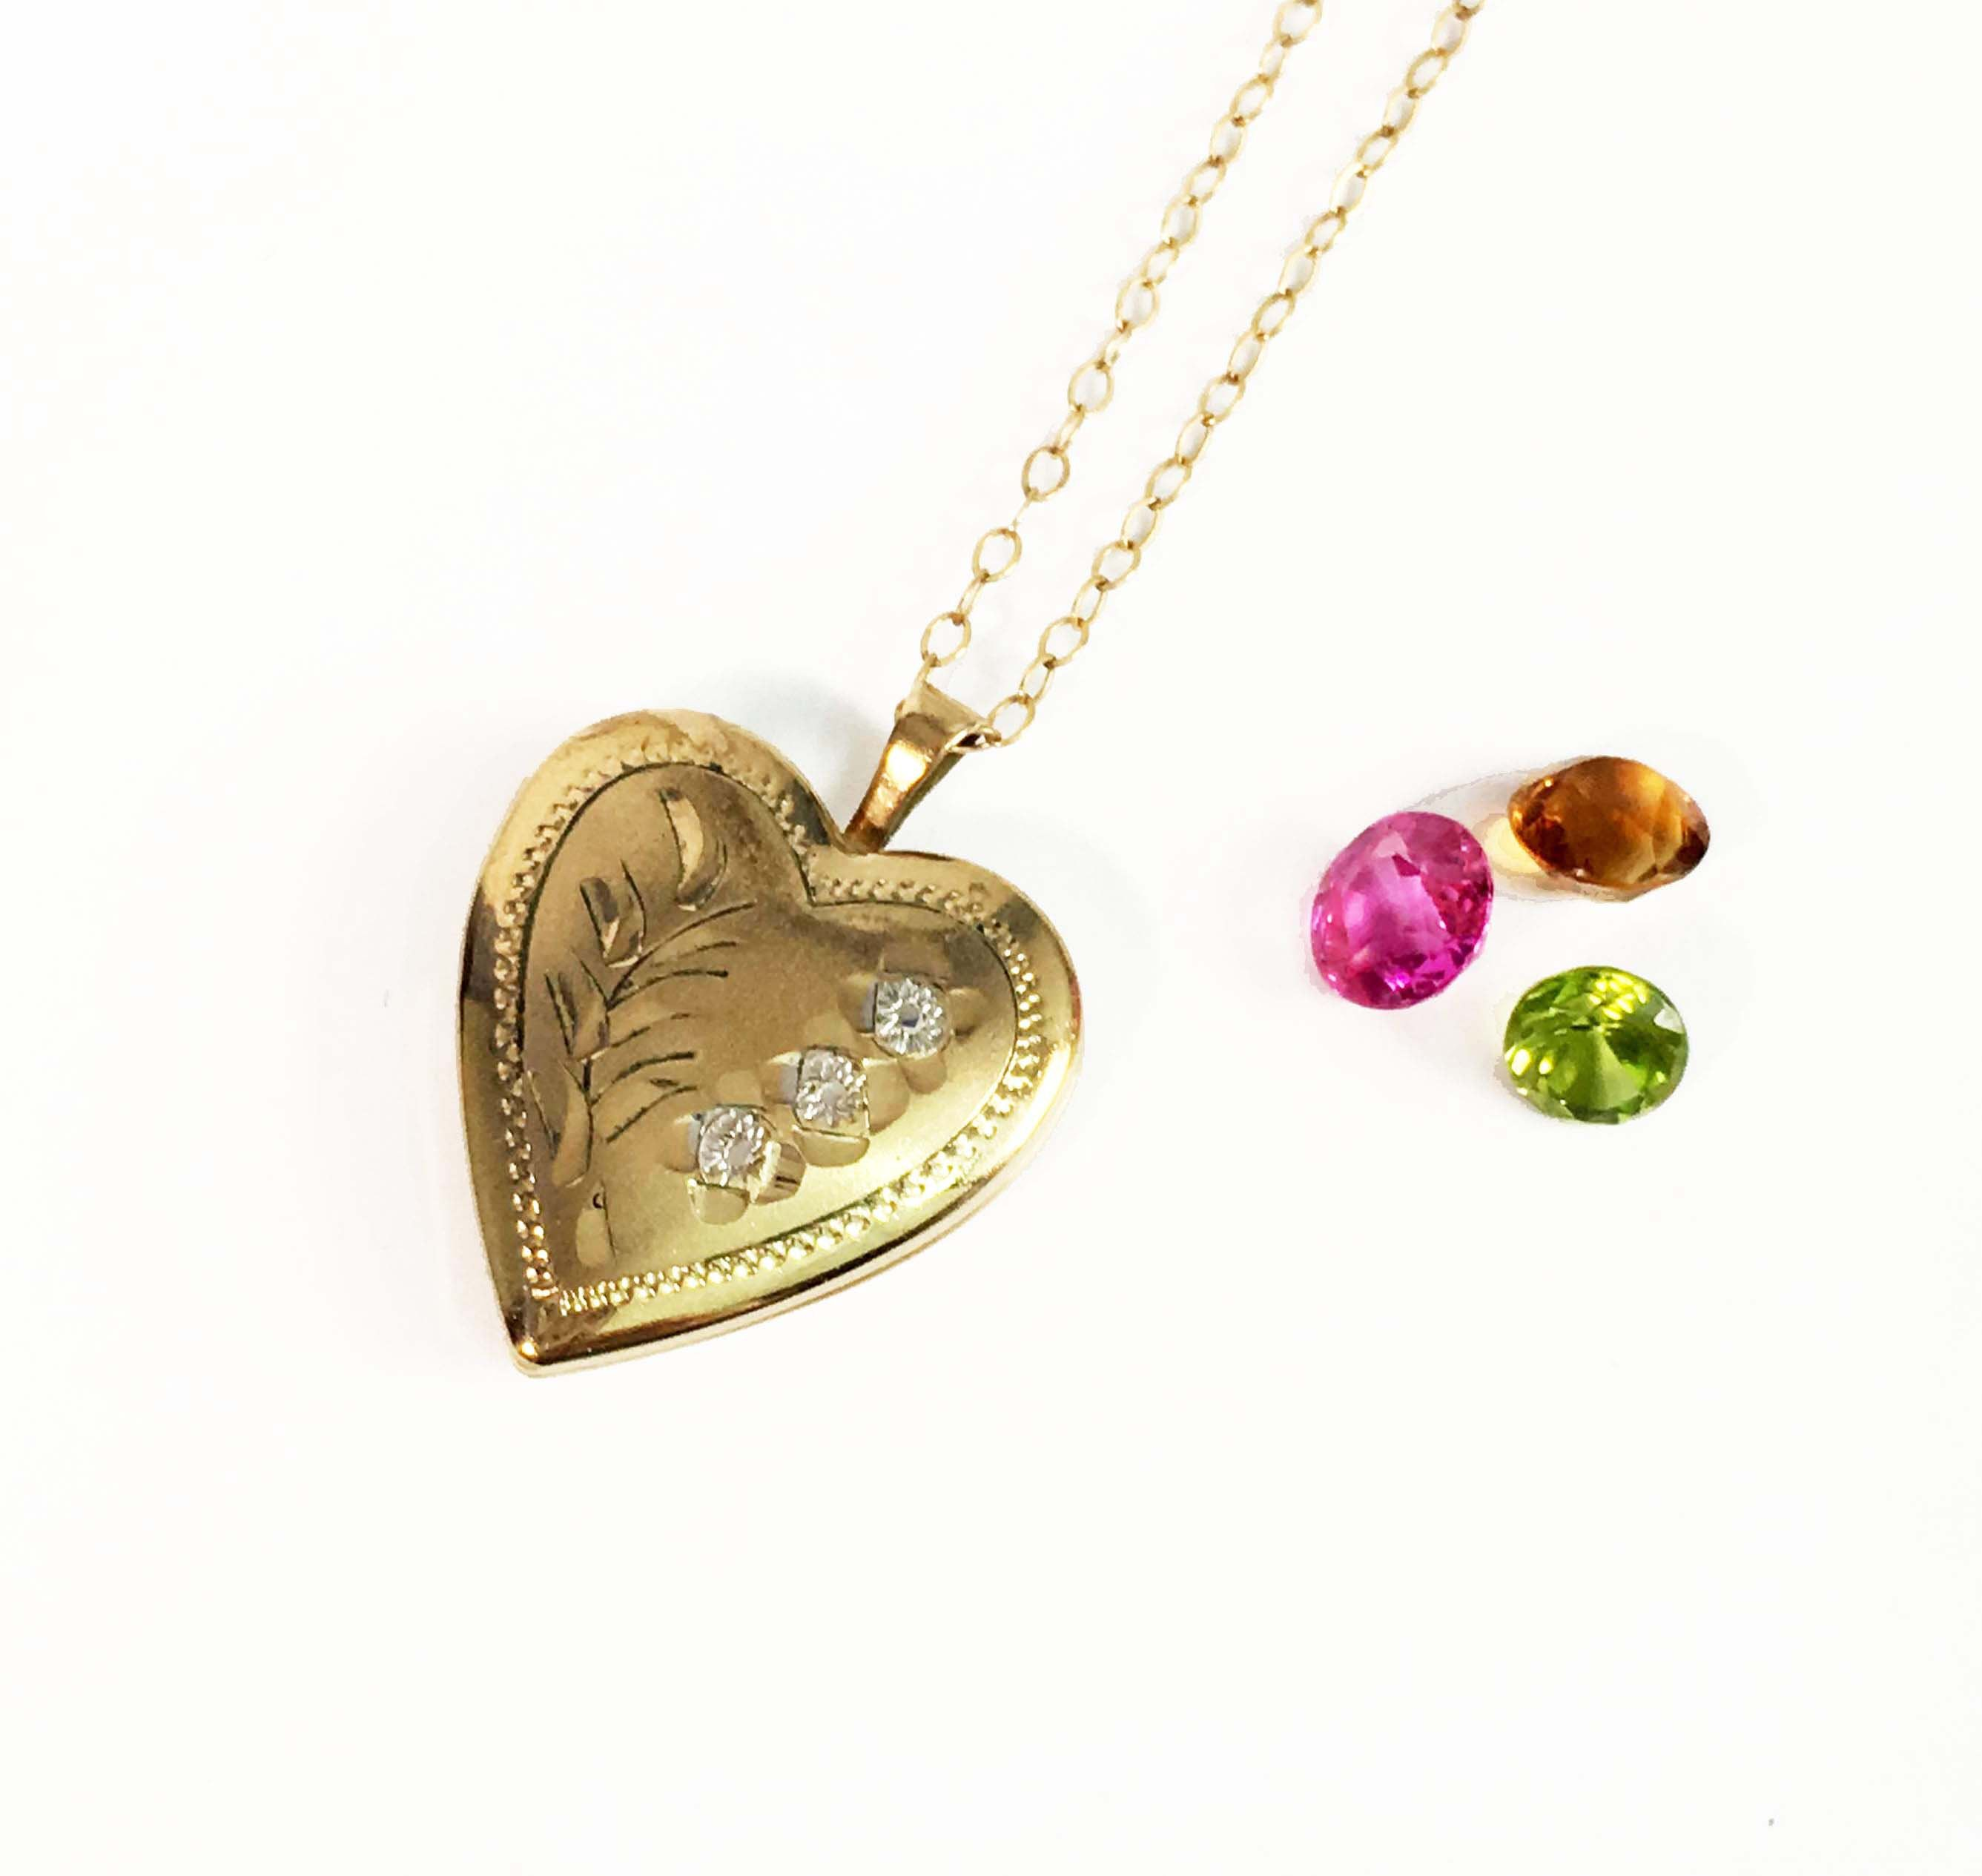 0a352b677698b Vintage 14k Gold Filled Heart Locket Necklace - Princess Pride Creations  PPC Petite Pendant Charm Jewelry